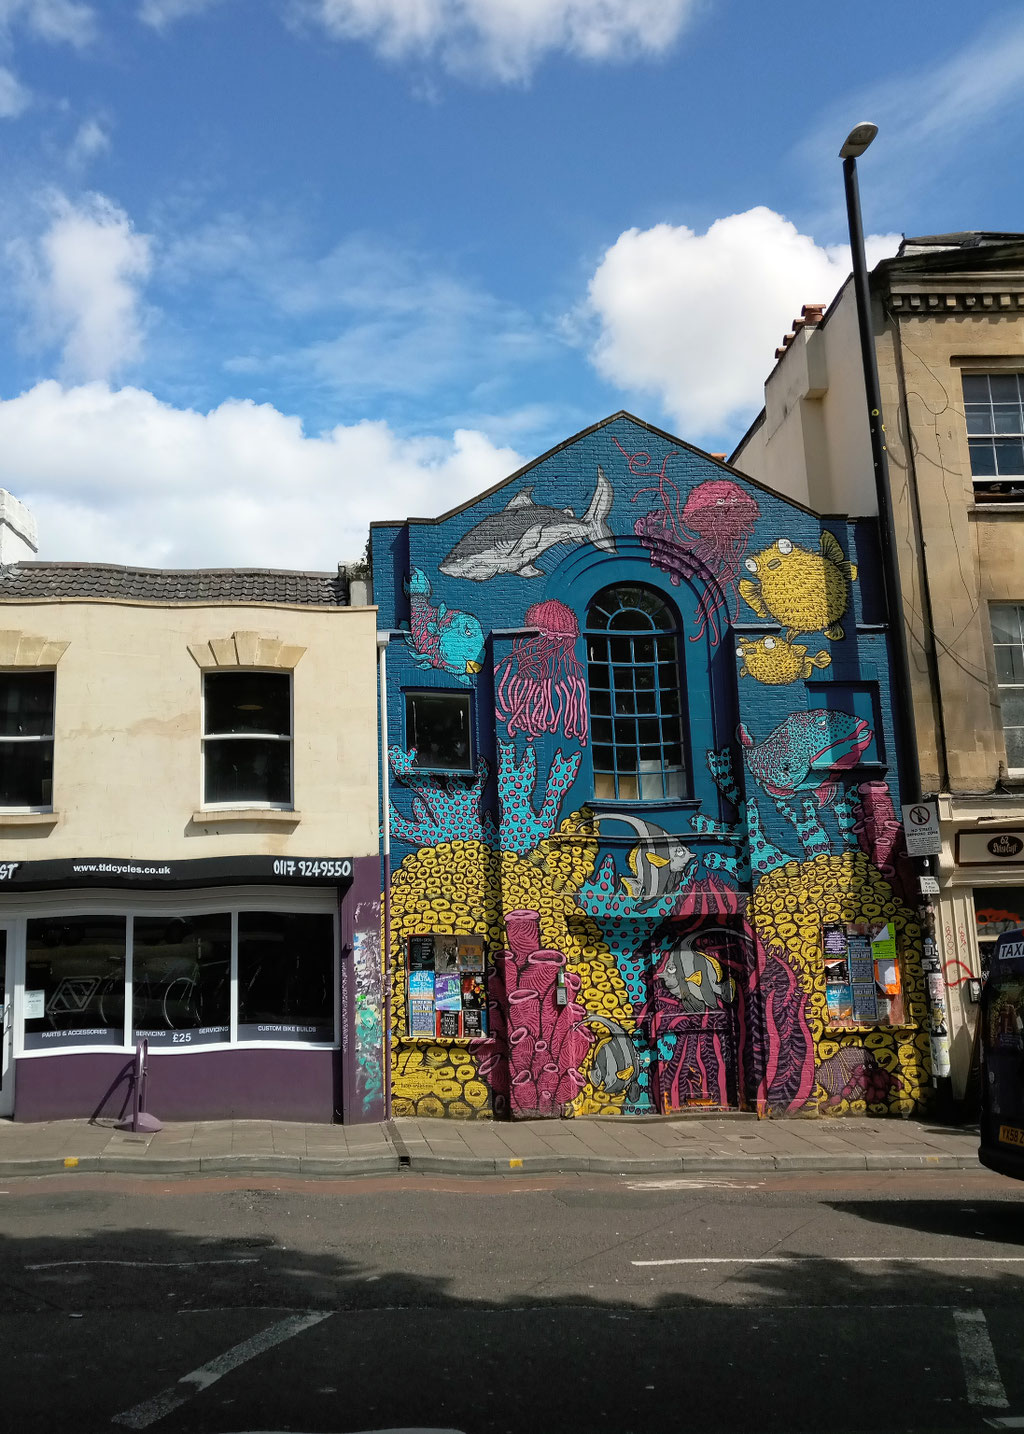 Zum Urlaub nach Cornwall - Bristol Stokes Croft - Zebraspider DIY Anti-Fashion Blog